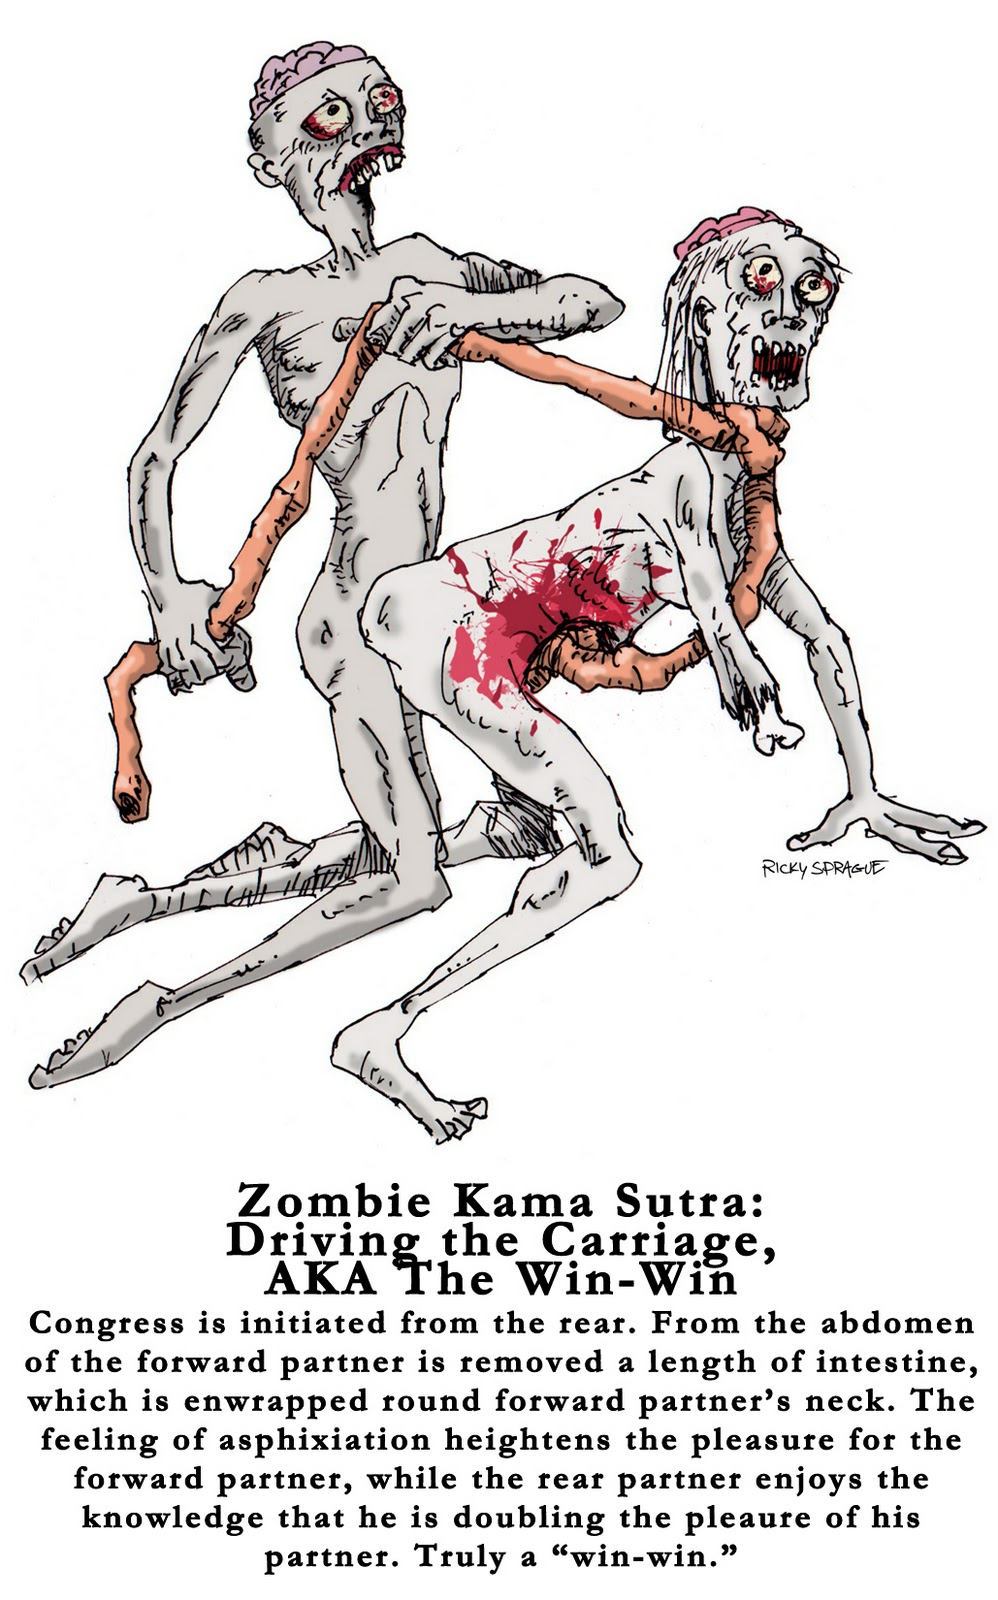 http://youbentmywookie.com/wookie/gallery/1011_zombie-kama-sutra-even-the-dead-needs-to-get-their-freak-on/Zombie%20Kama%20Sutra-%20Driving%20the%20Carriage.jpg